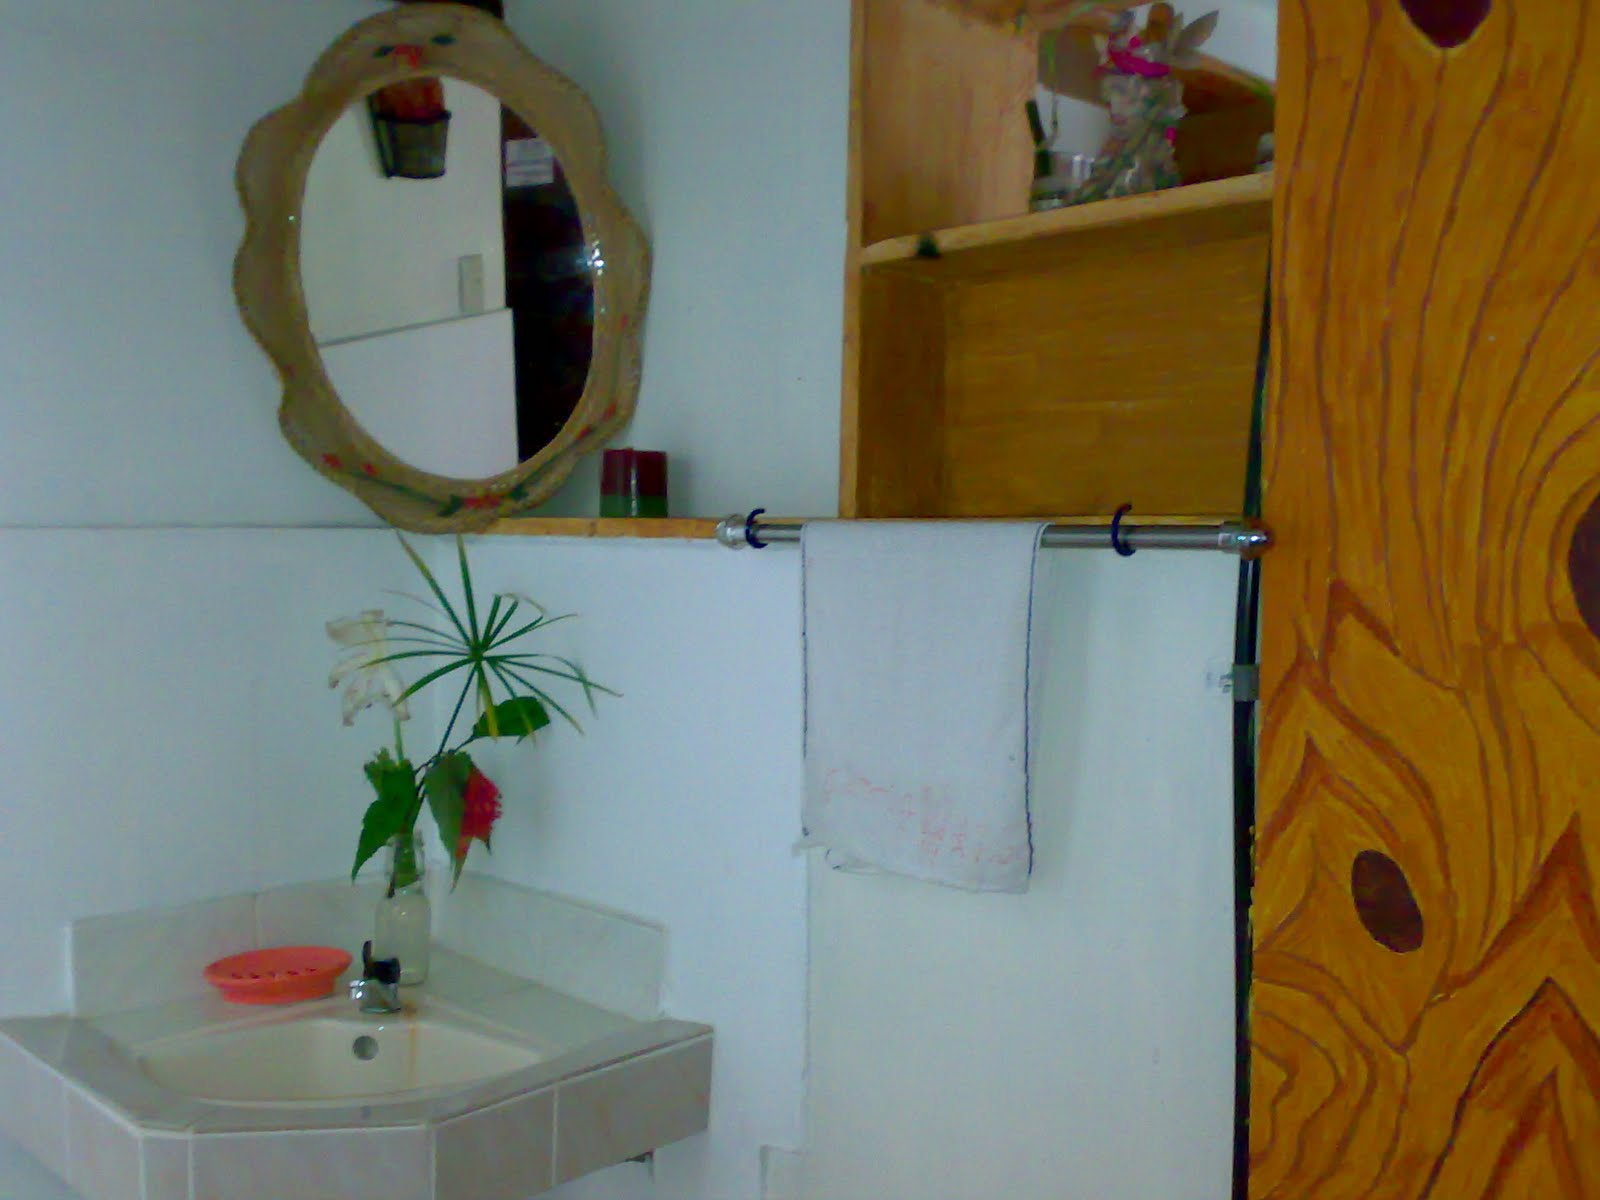 Lou's Three-Bedroom Transient House: The Bathroom